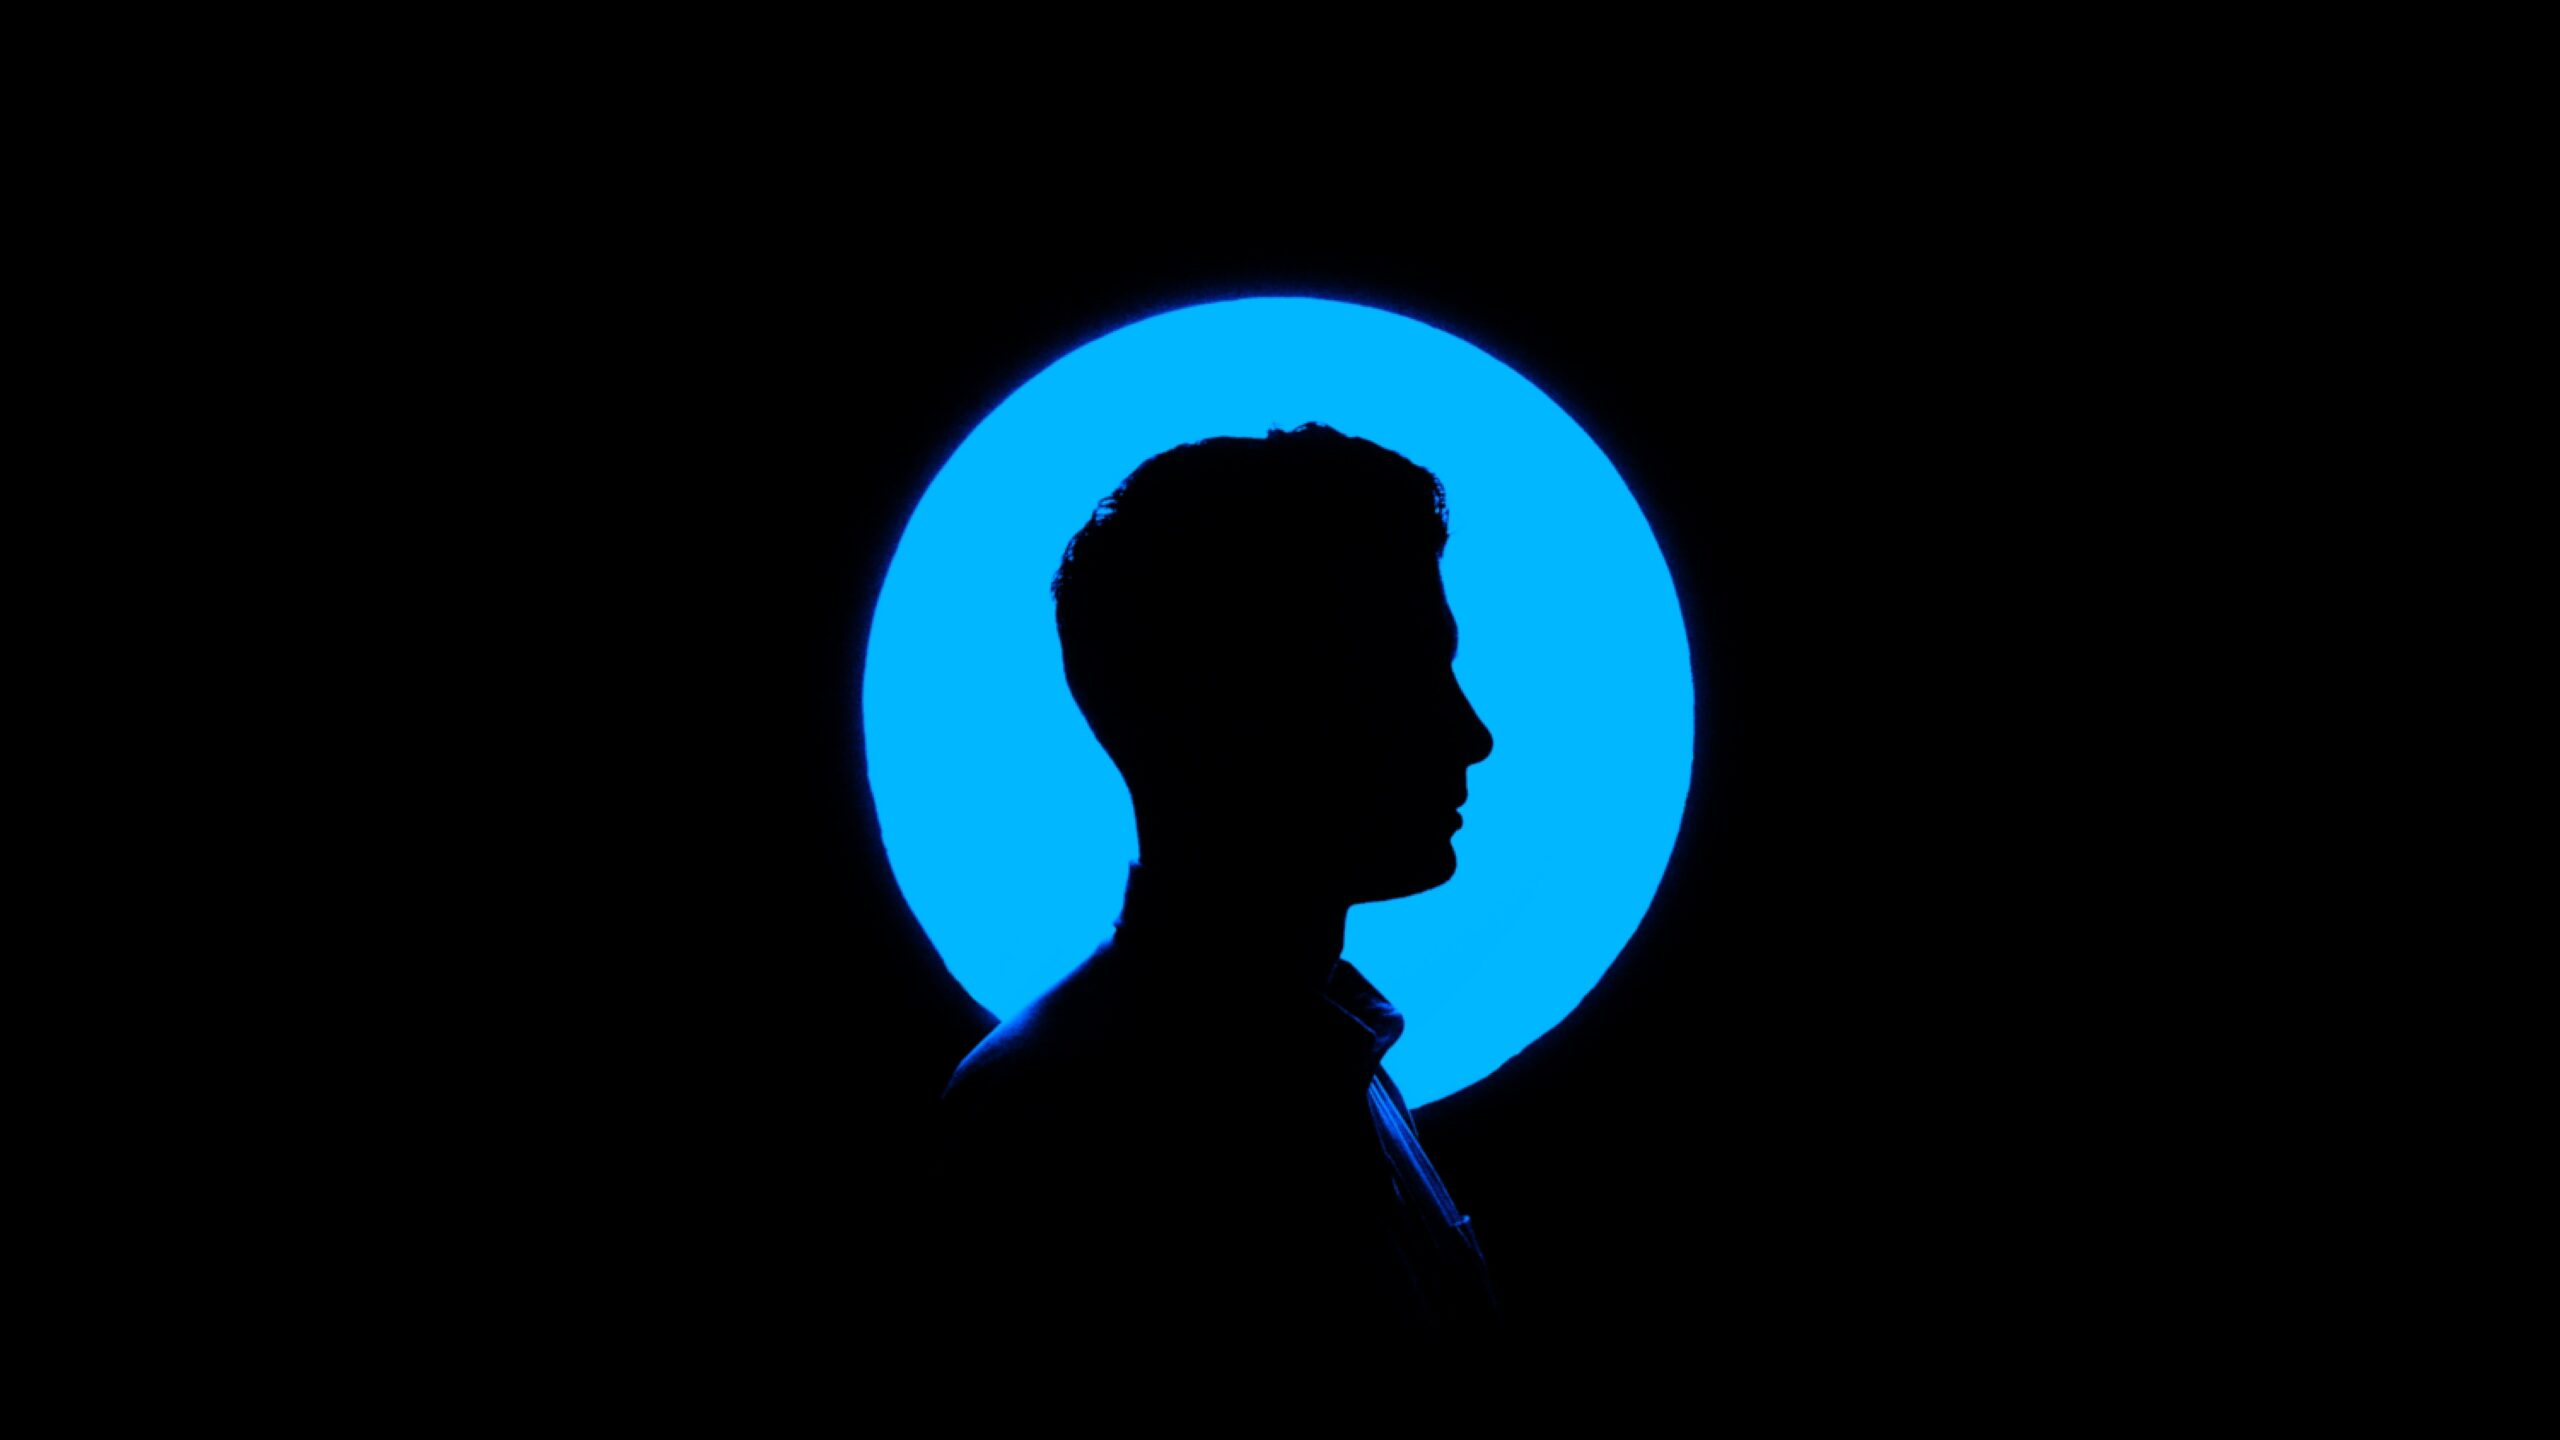 silhouette of a man graphic